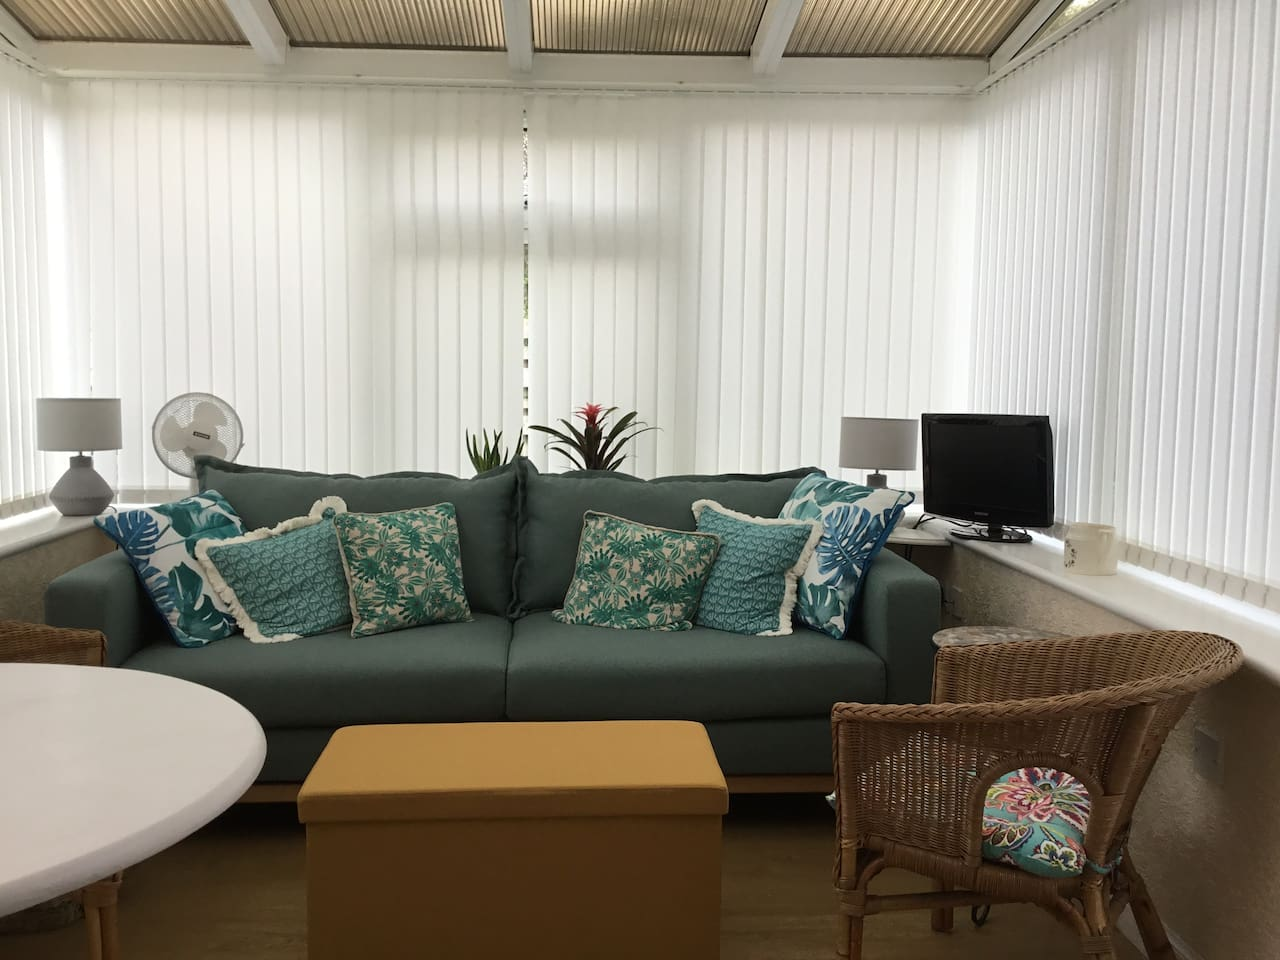 This shows the conservatory with the sofa which opens out into a double bed. There is also a bedroom with a 4 foot wide bed - see next photos